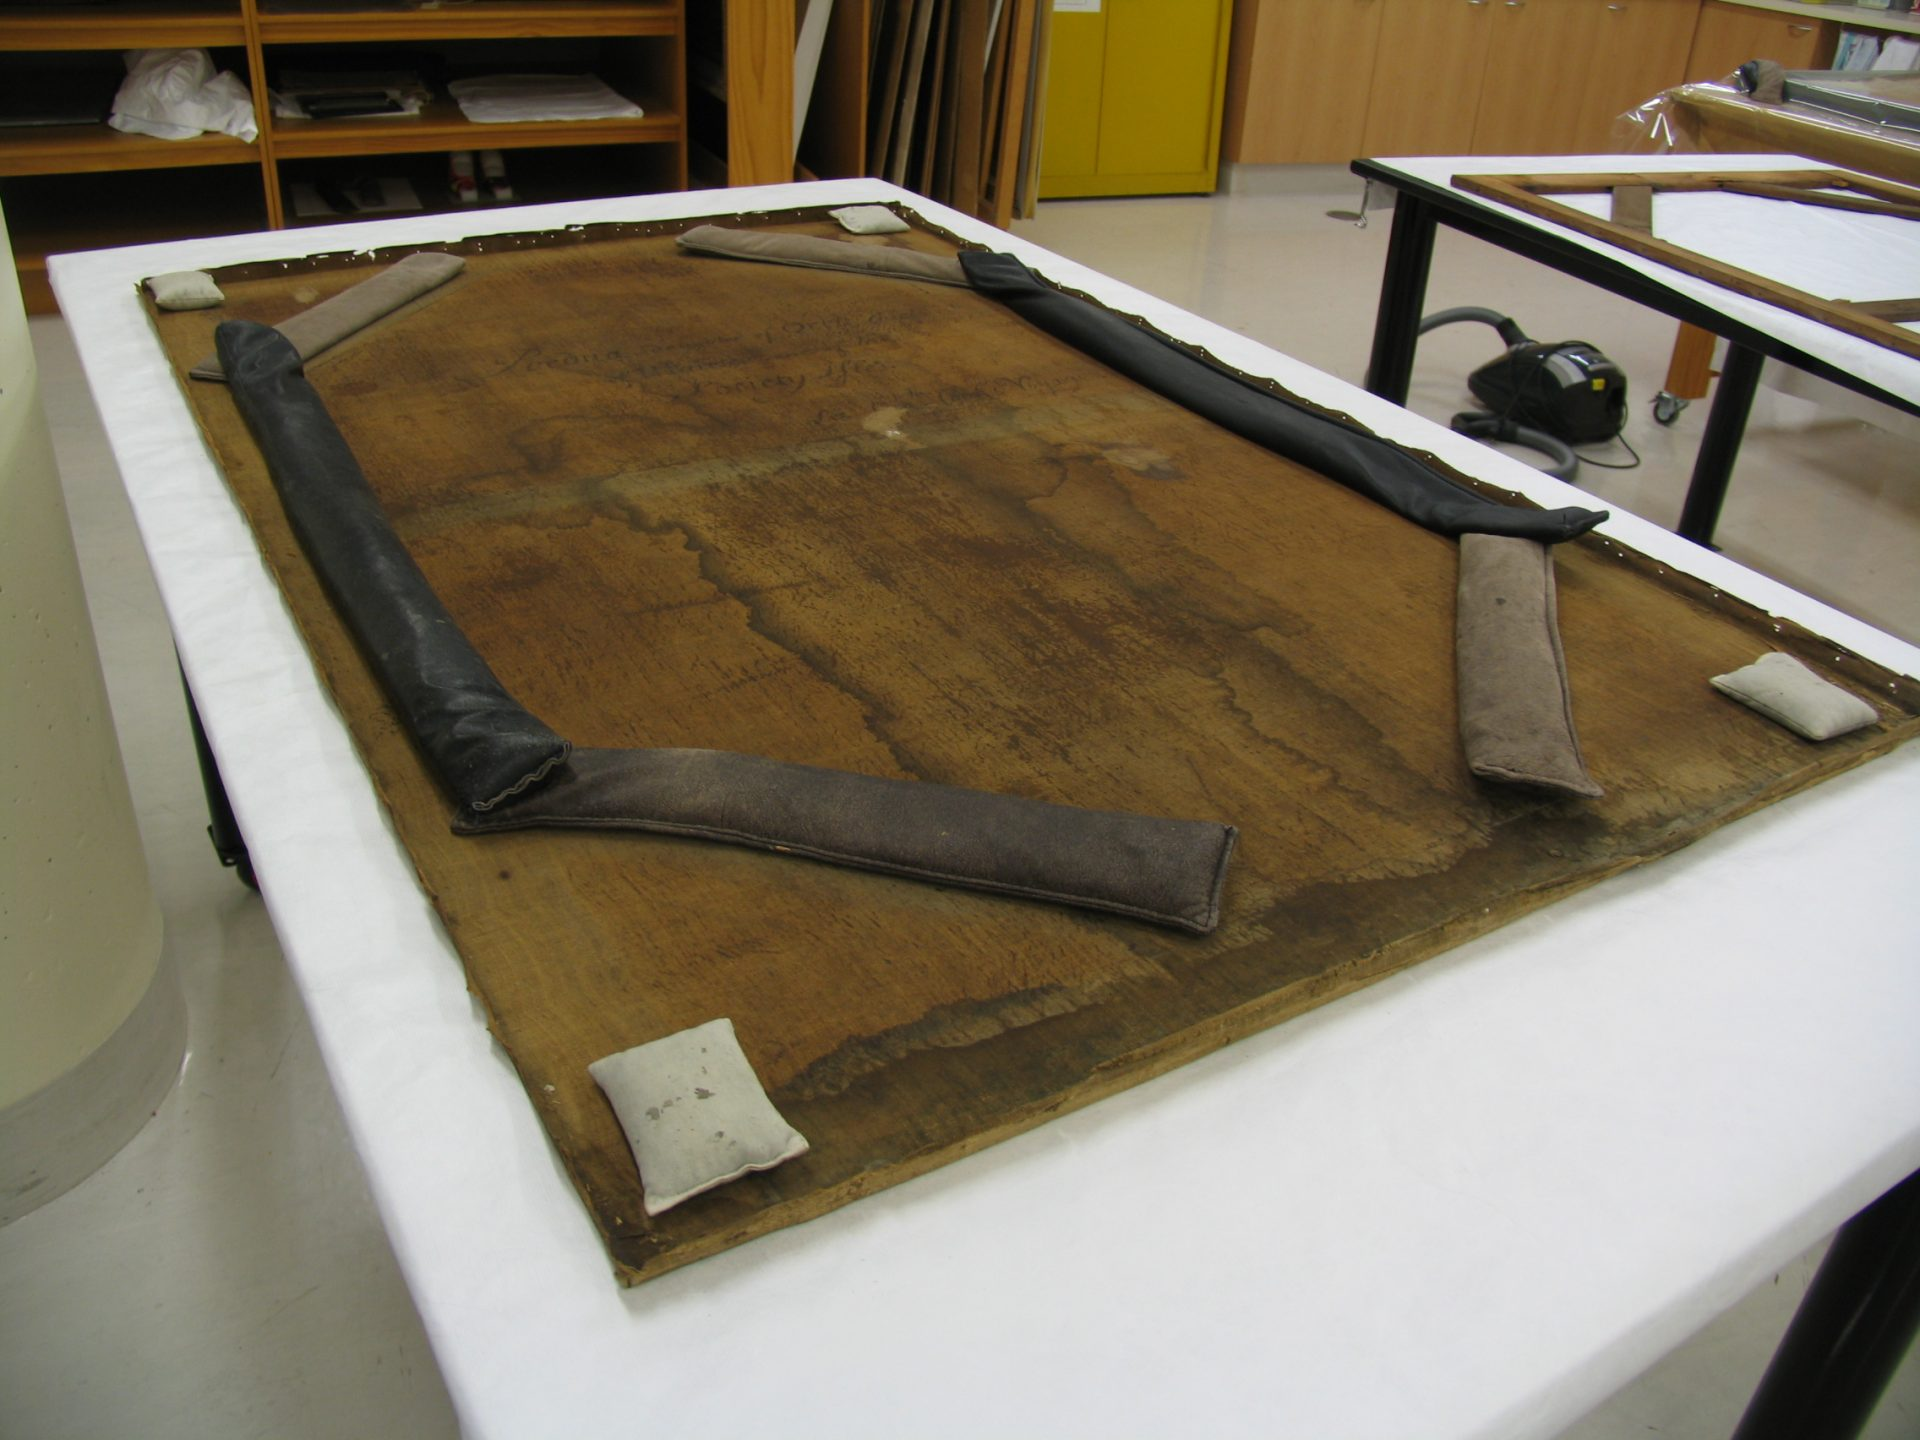 The canvas face down on the table with the stretcher removed (which can be seen on another table in the top right). The leather weights hold the canvas in position while it is loose. Photograph taken by Melanie Carlisle, 2011. © Te Papa.